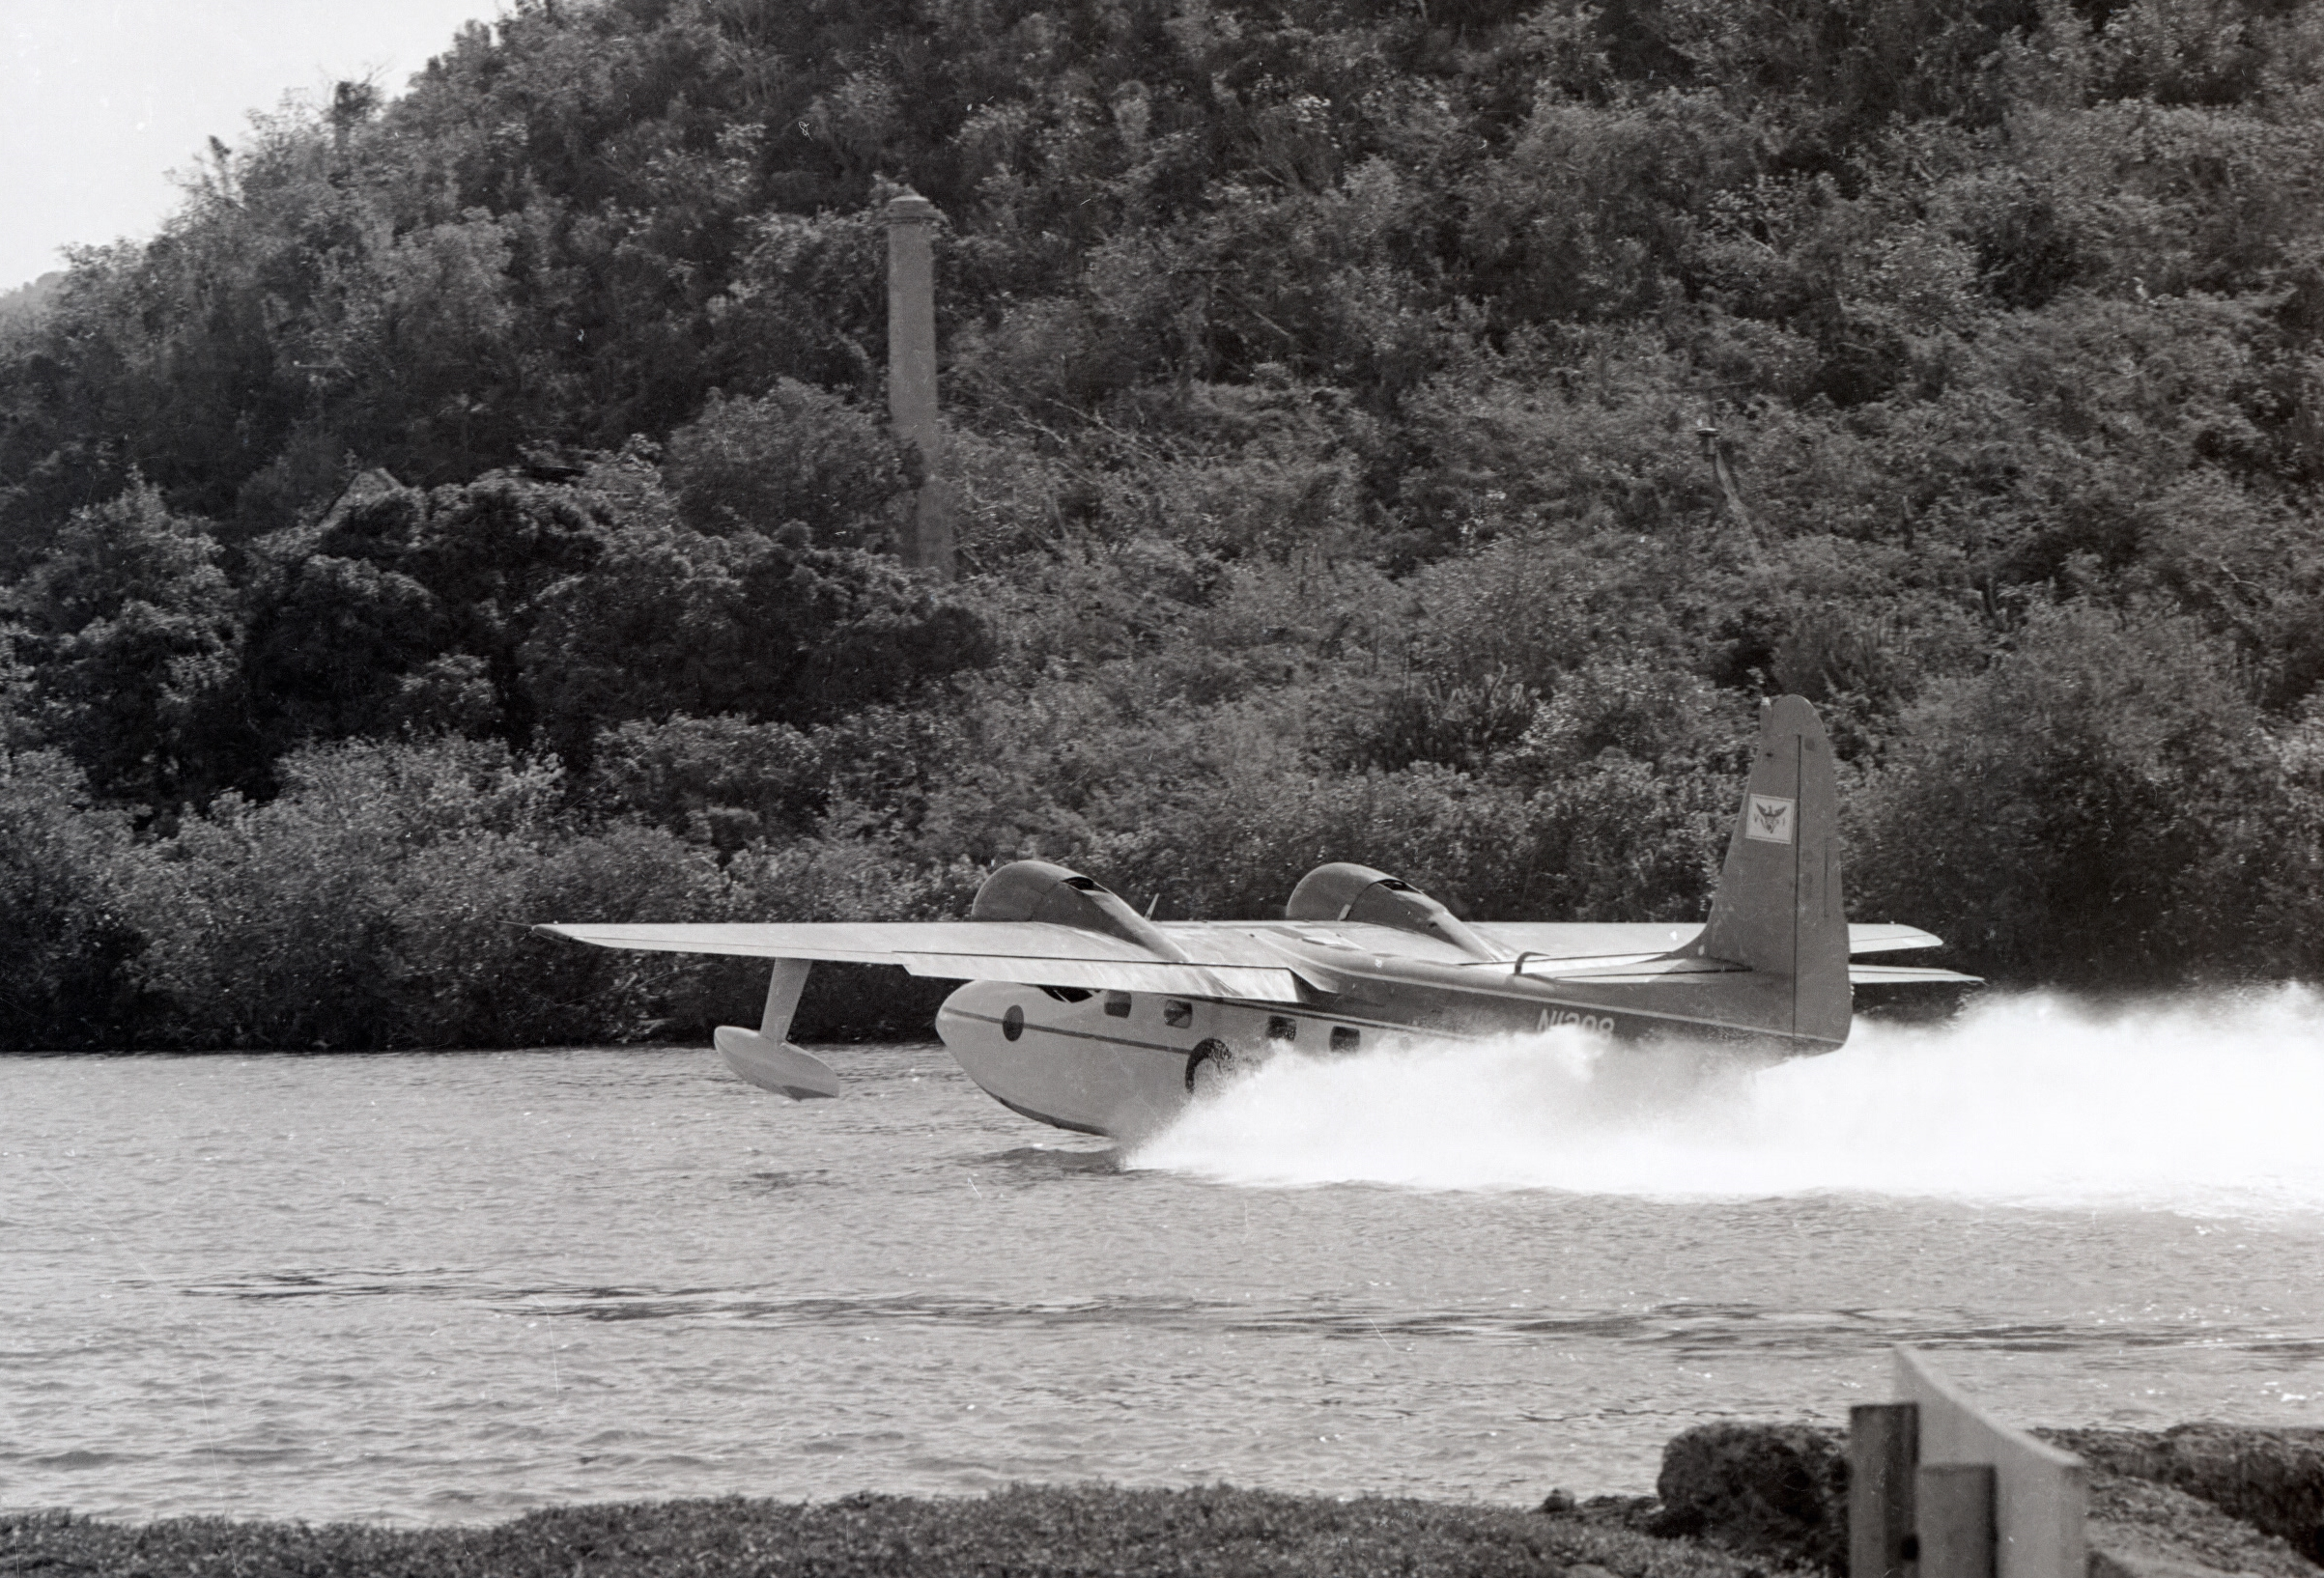 G73 Mallard landing at St. Thomas